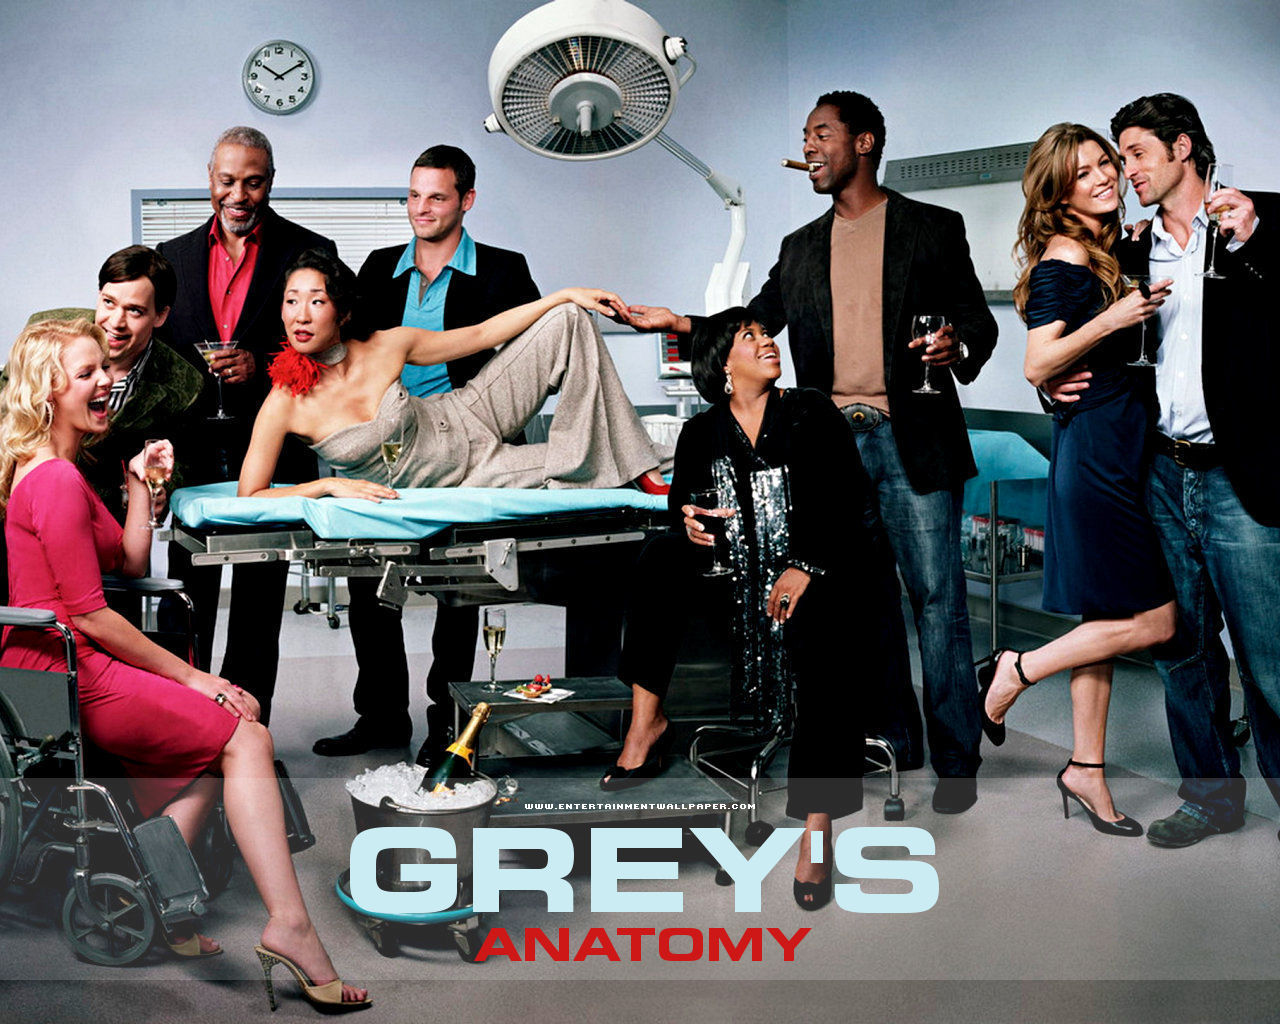 Gray anatomy tv show 301804 - follow4more.info